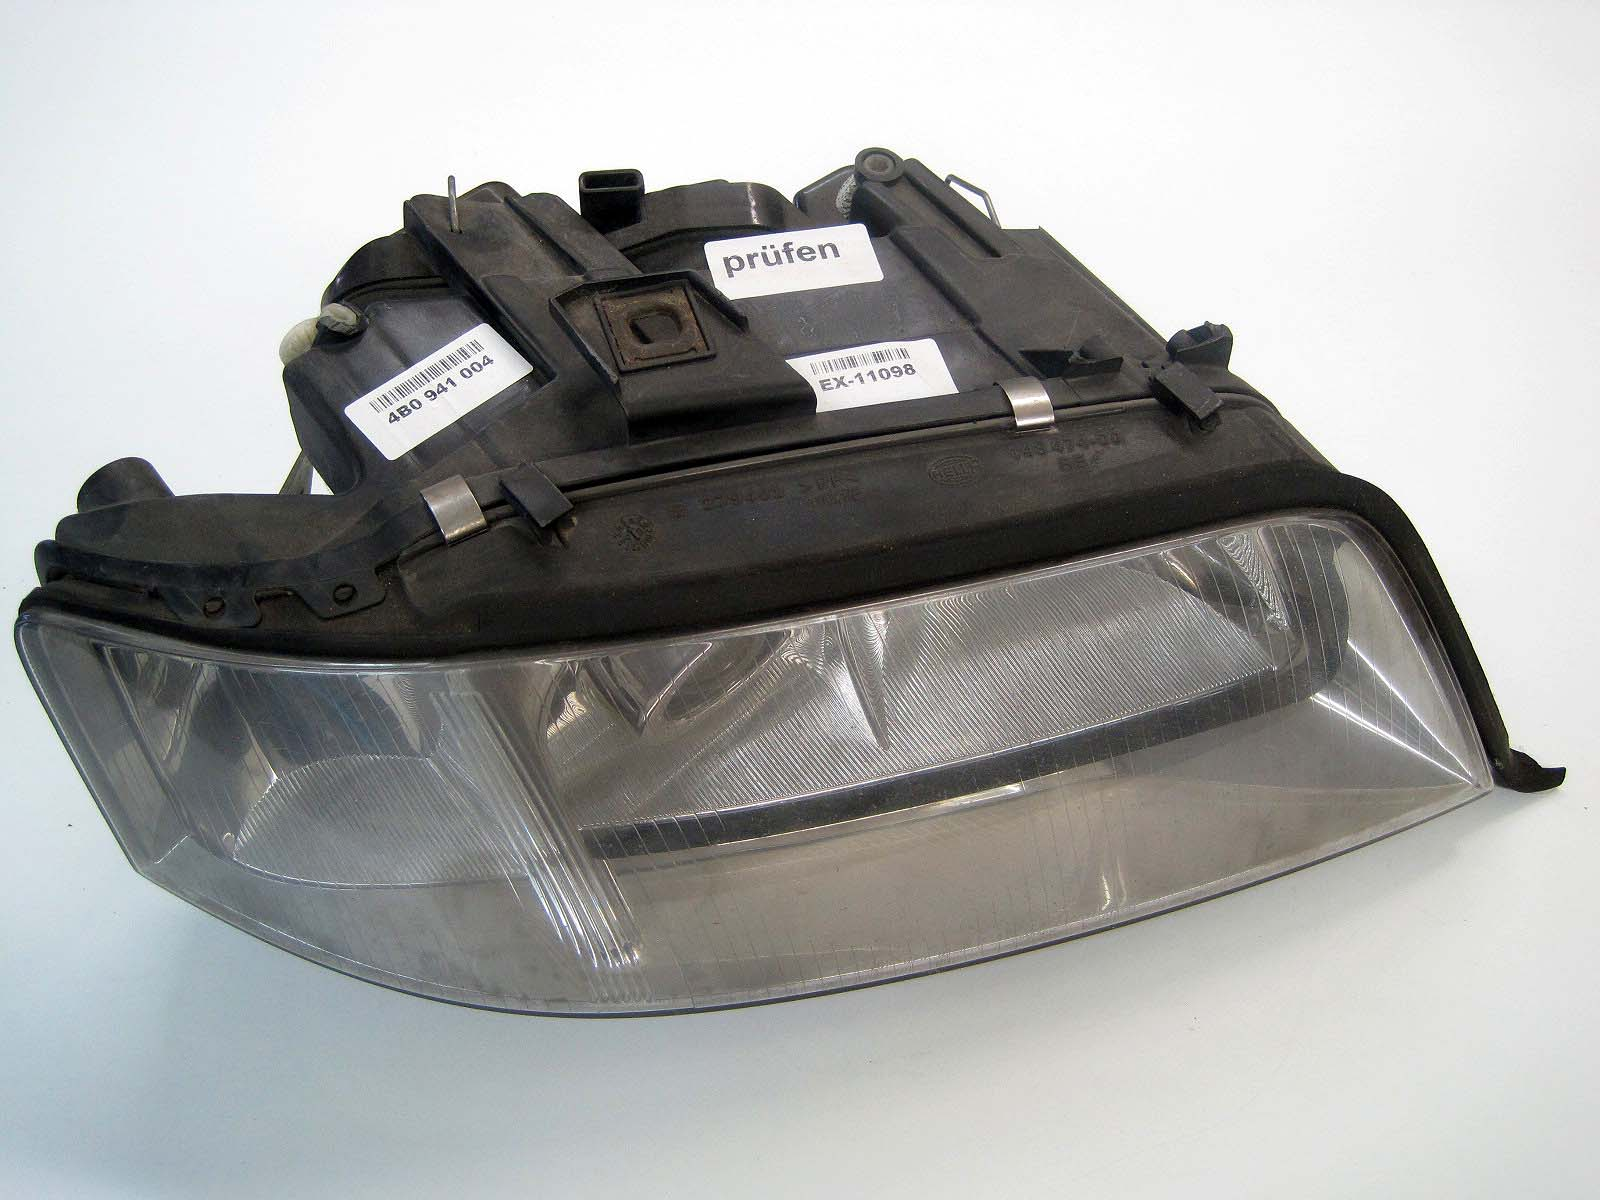 Headlight used 4B0941004 prüfen